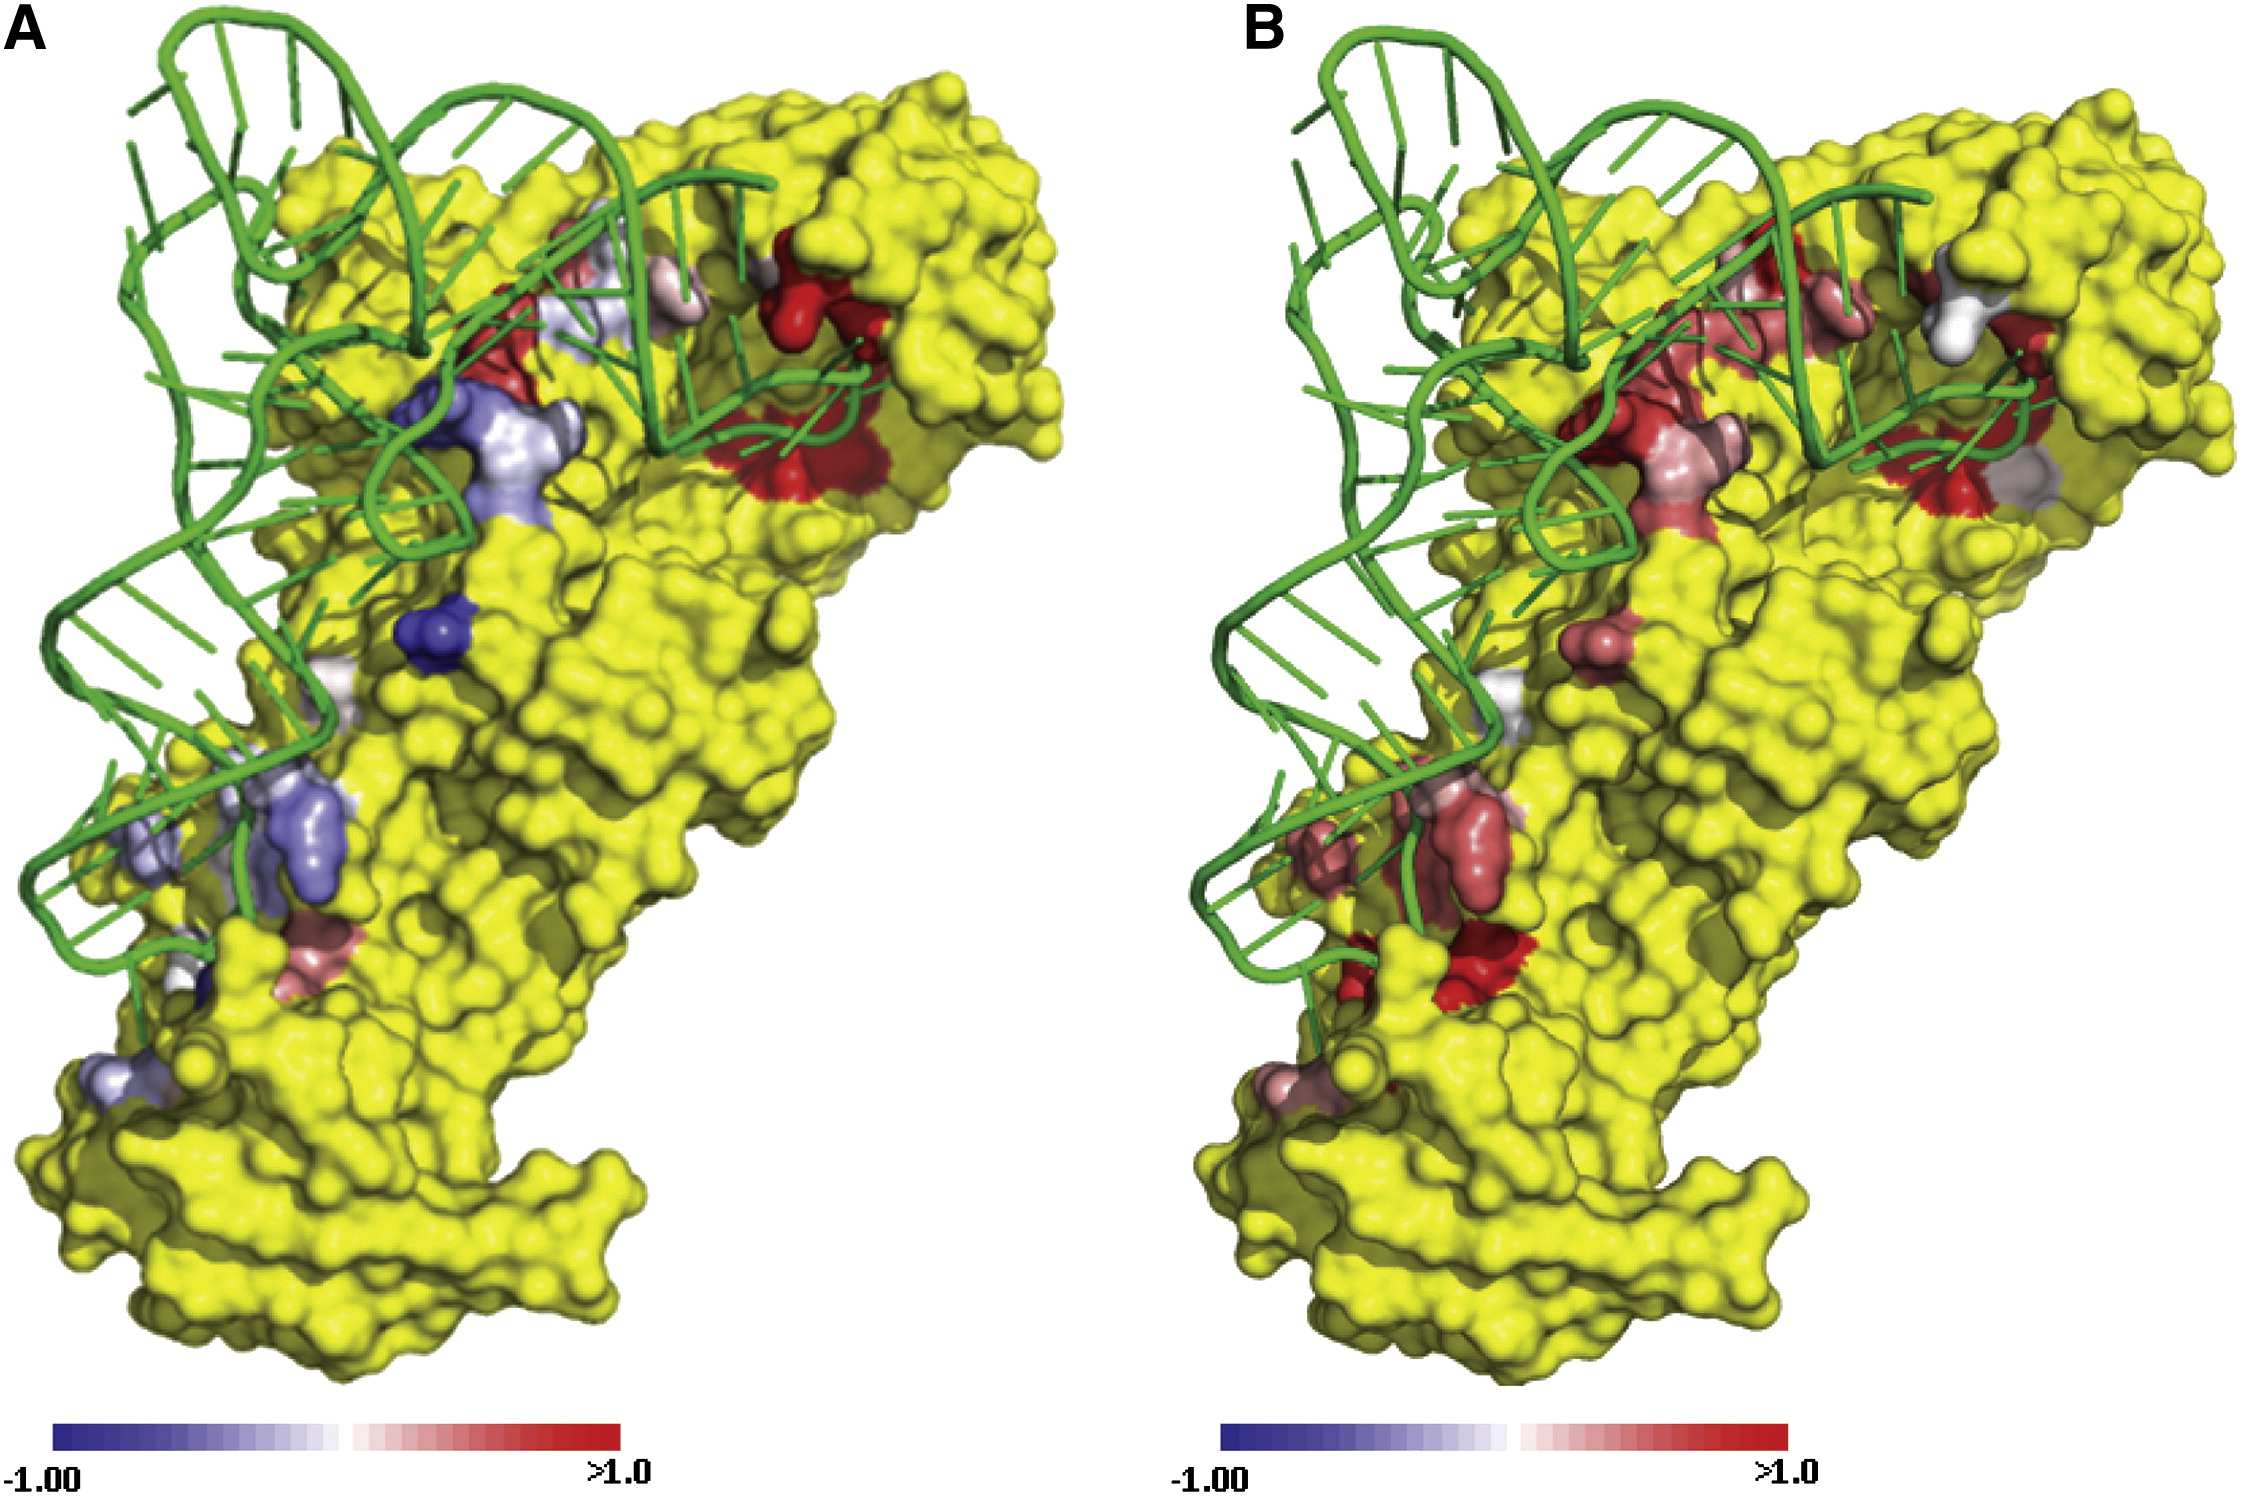 Heat Maps For Intramolecular Communication In An Rnp Enzyme Encoding Glutamine Structure